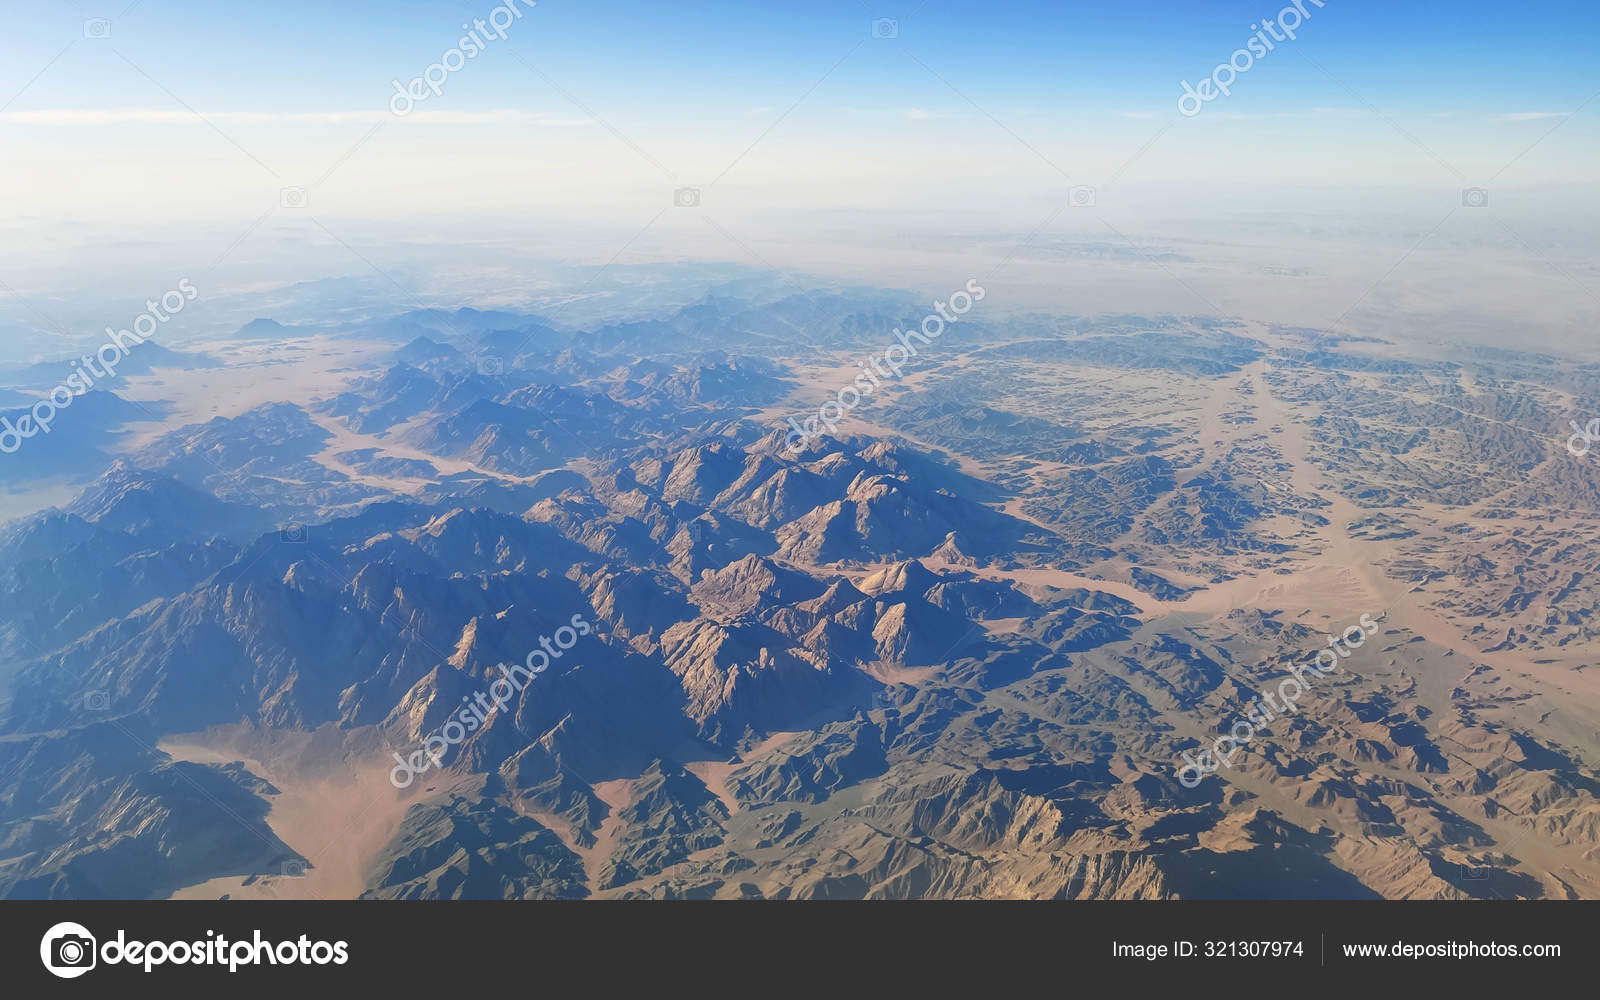 Beautiful view from the window of an airplane mountains